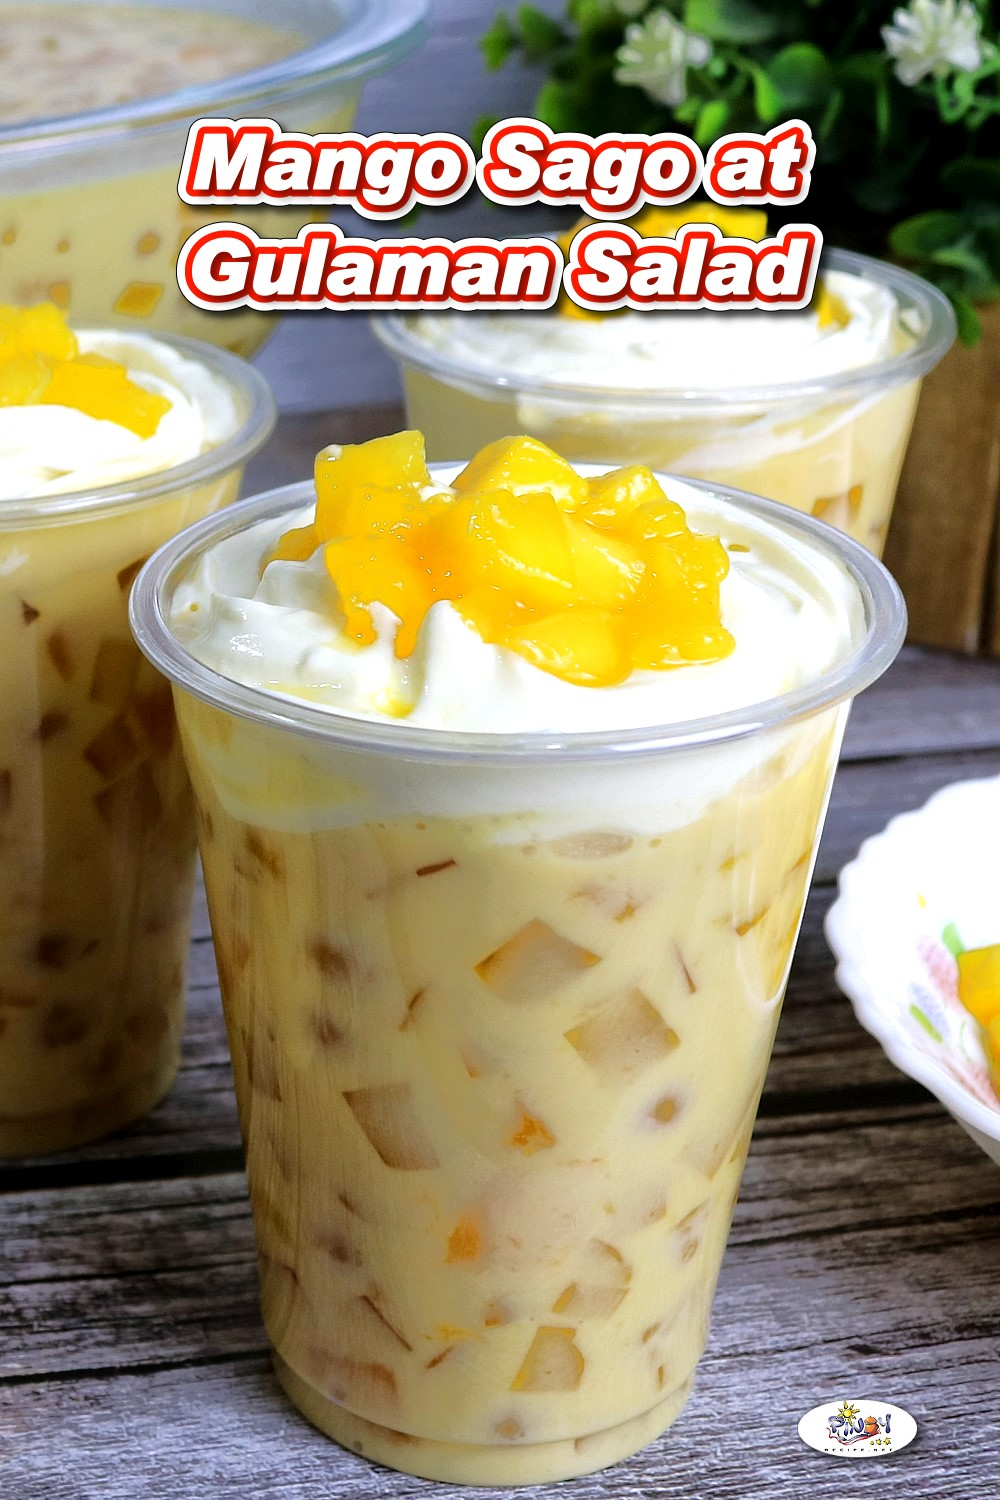 Mango Sago at Gulaman Salad